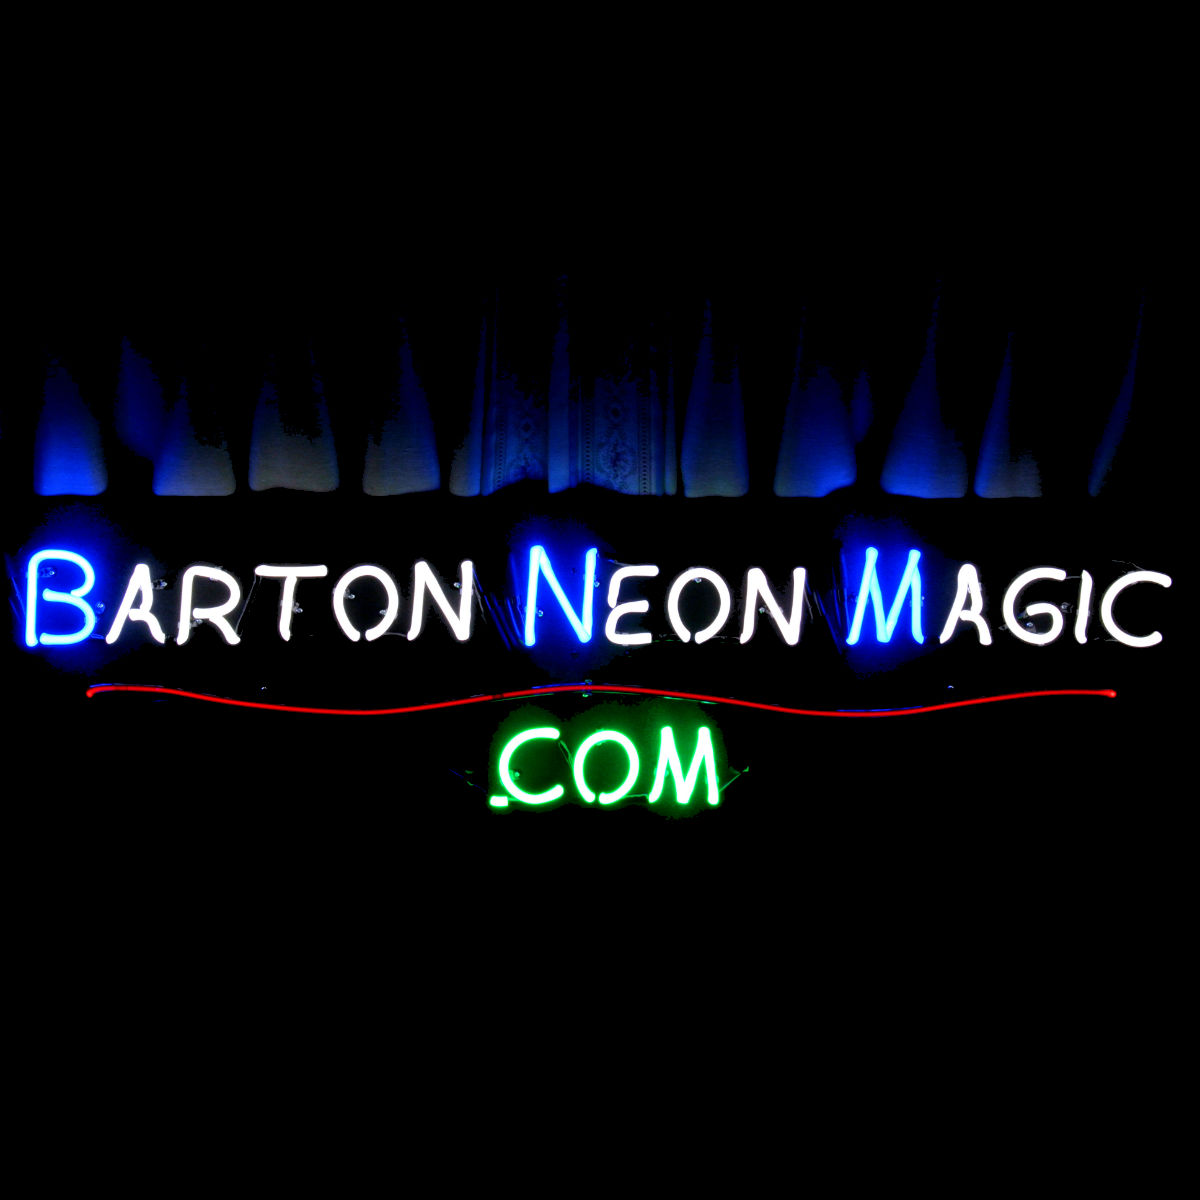 Fine Quality Custom Neon Signs, Chandeliers, Sculptures, and Artworks by John Barton - Famous USA Neon Light Sculptor - BartonNeonMagic.com